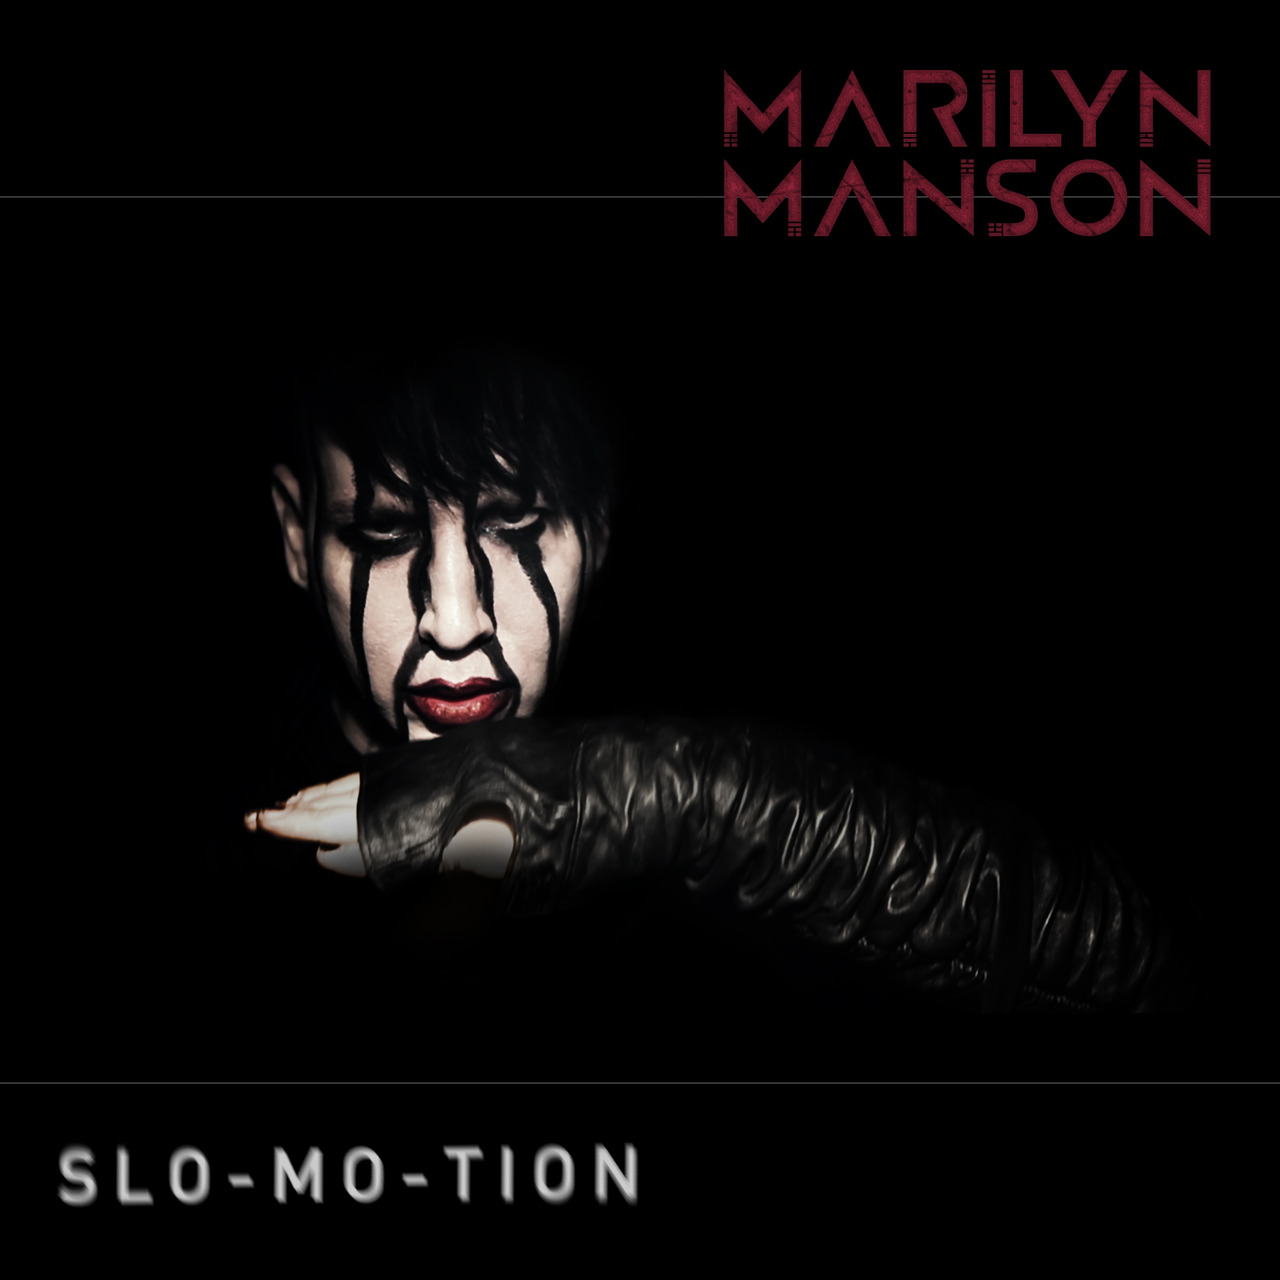 Slo-mo-tion cover.jpg